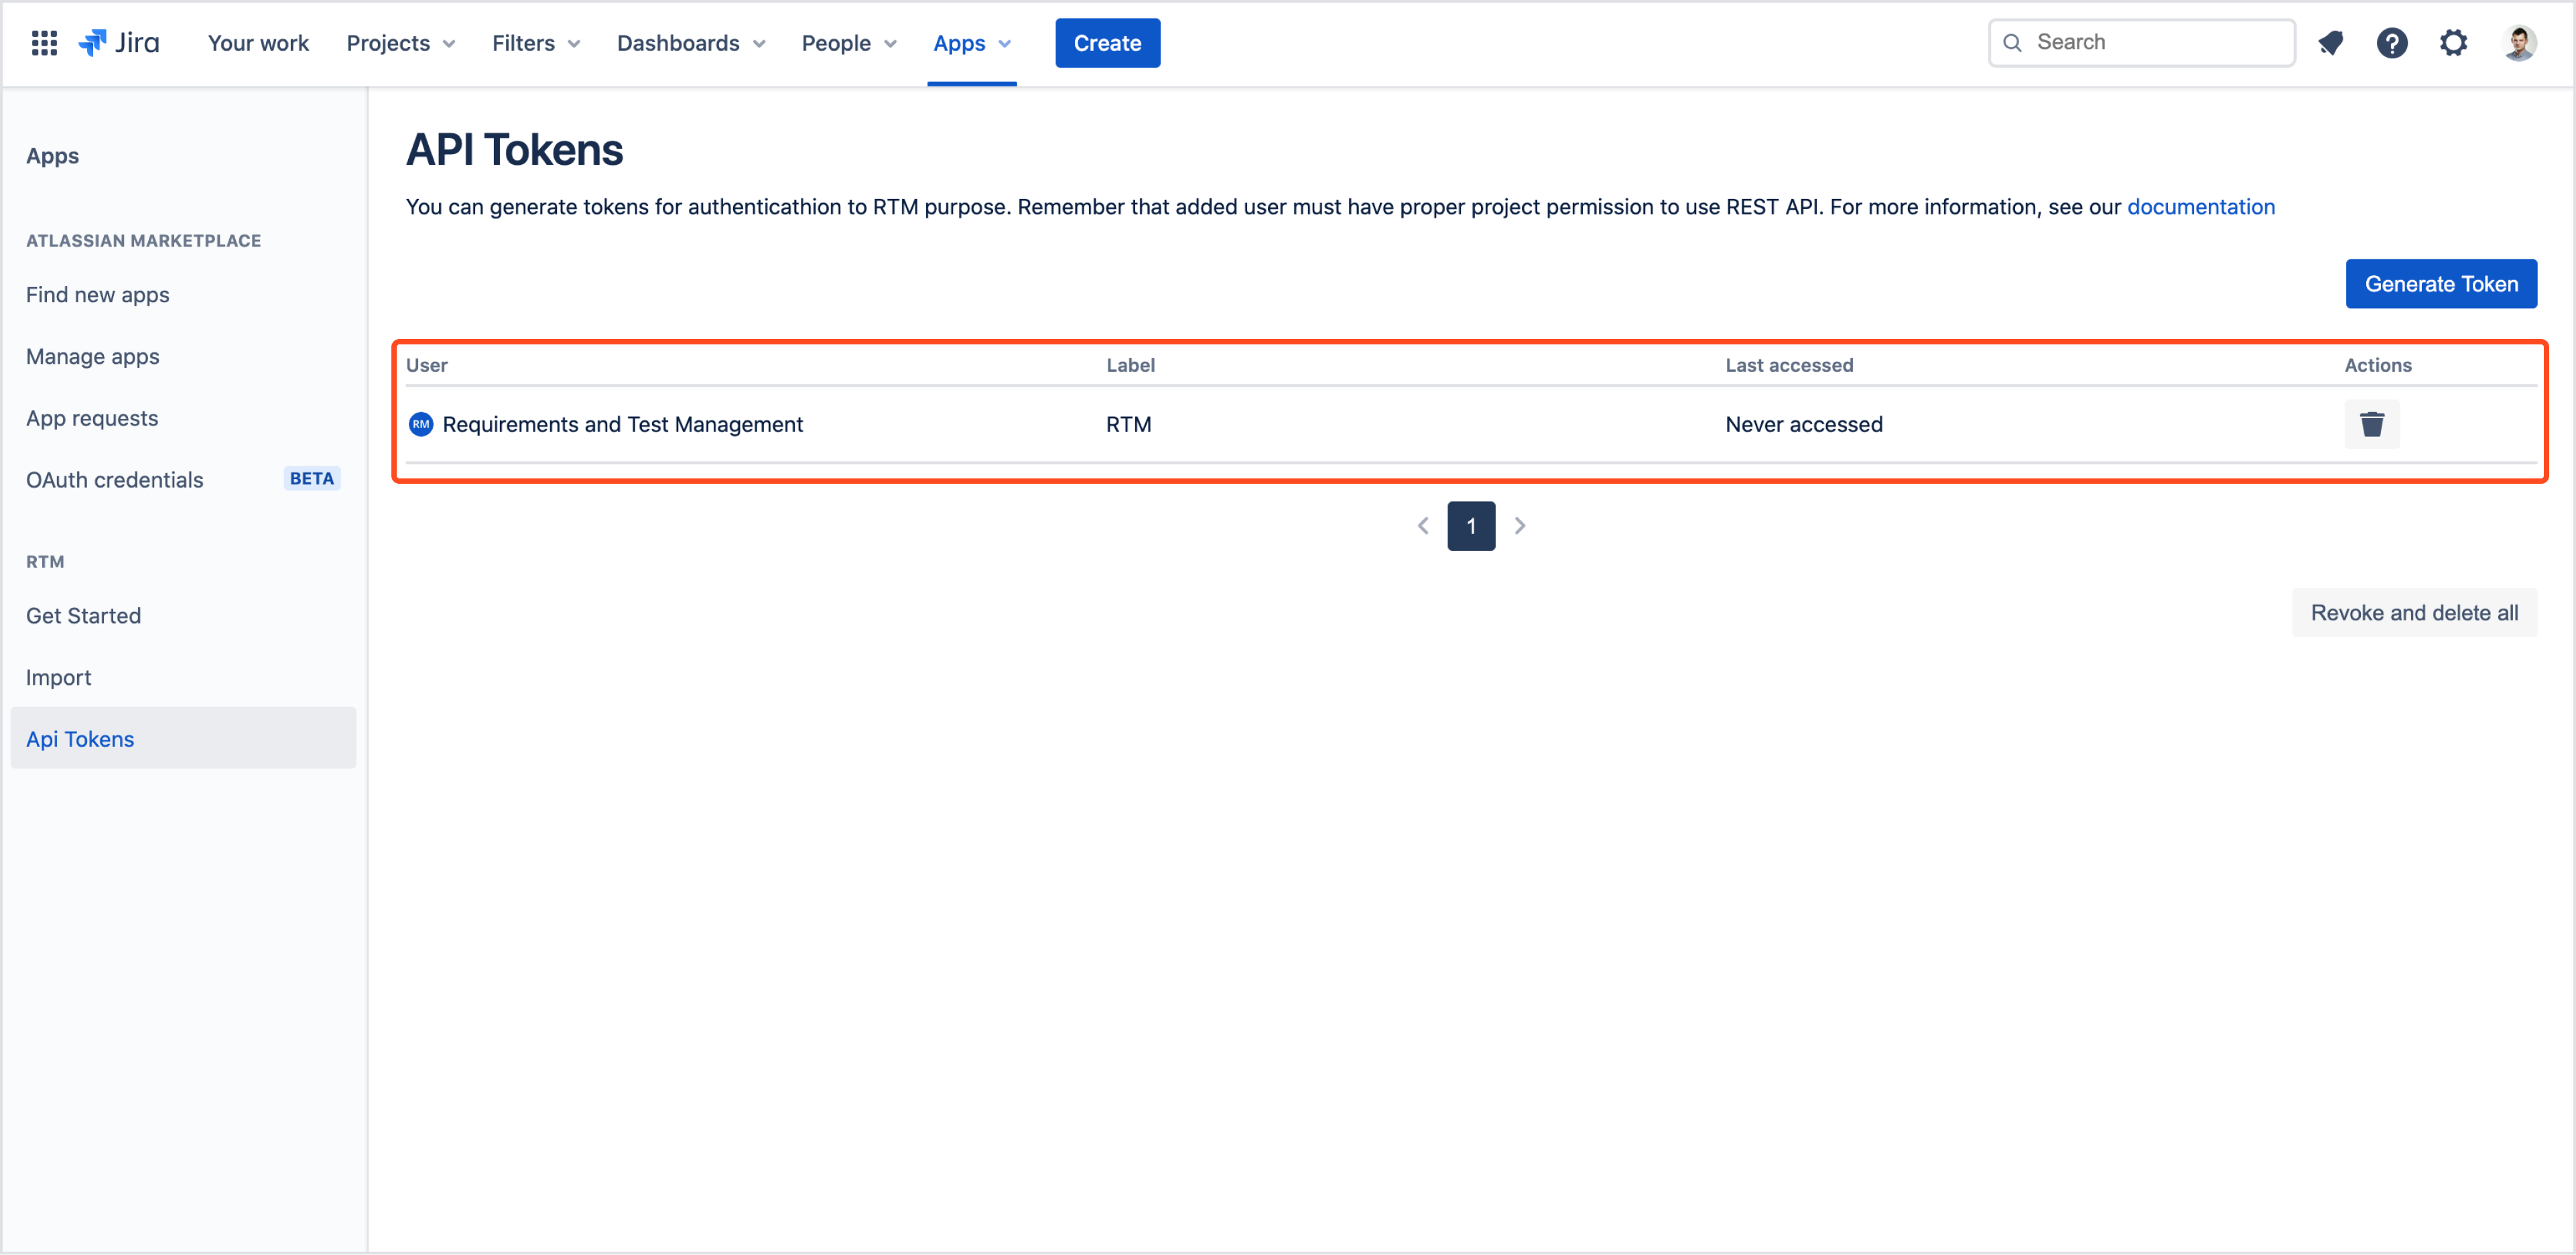 List of generated tokens to use REST API from Requirements and Test Management for Jira app